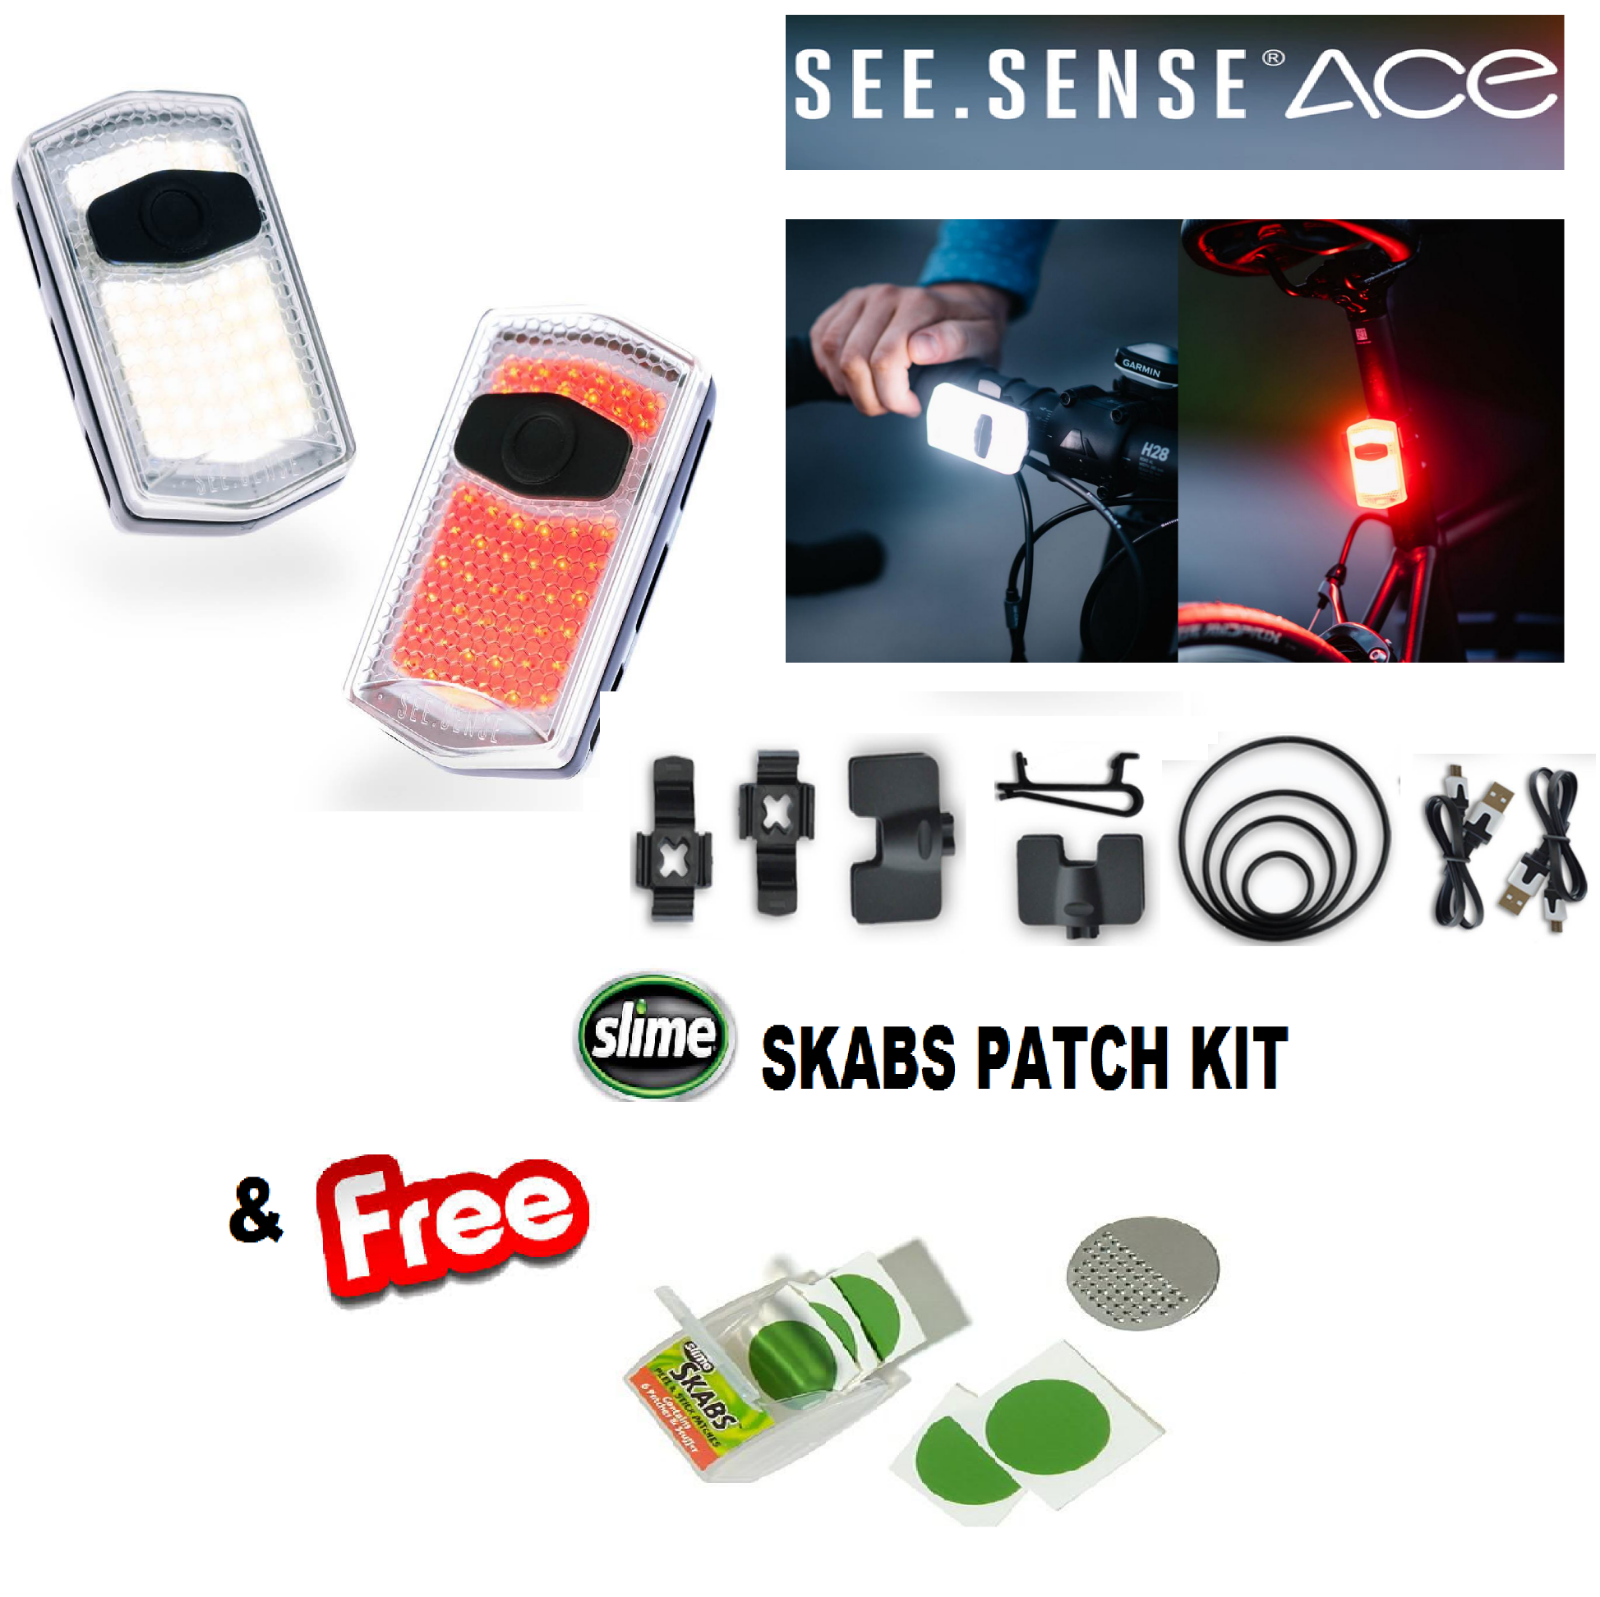 Vedere. Sense Ace anteriore anteriore anteriore e posteriore Set CICLISMO SMART Luci & Slime Skabs Kit Patch db3e65